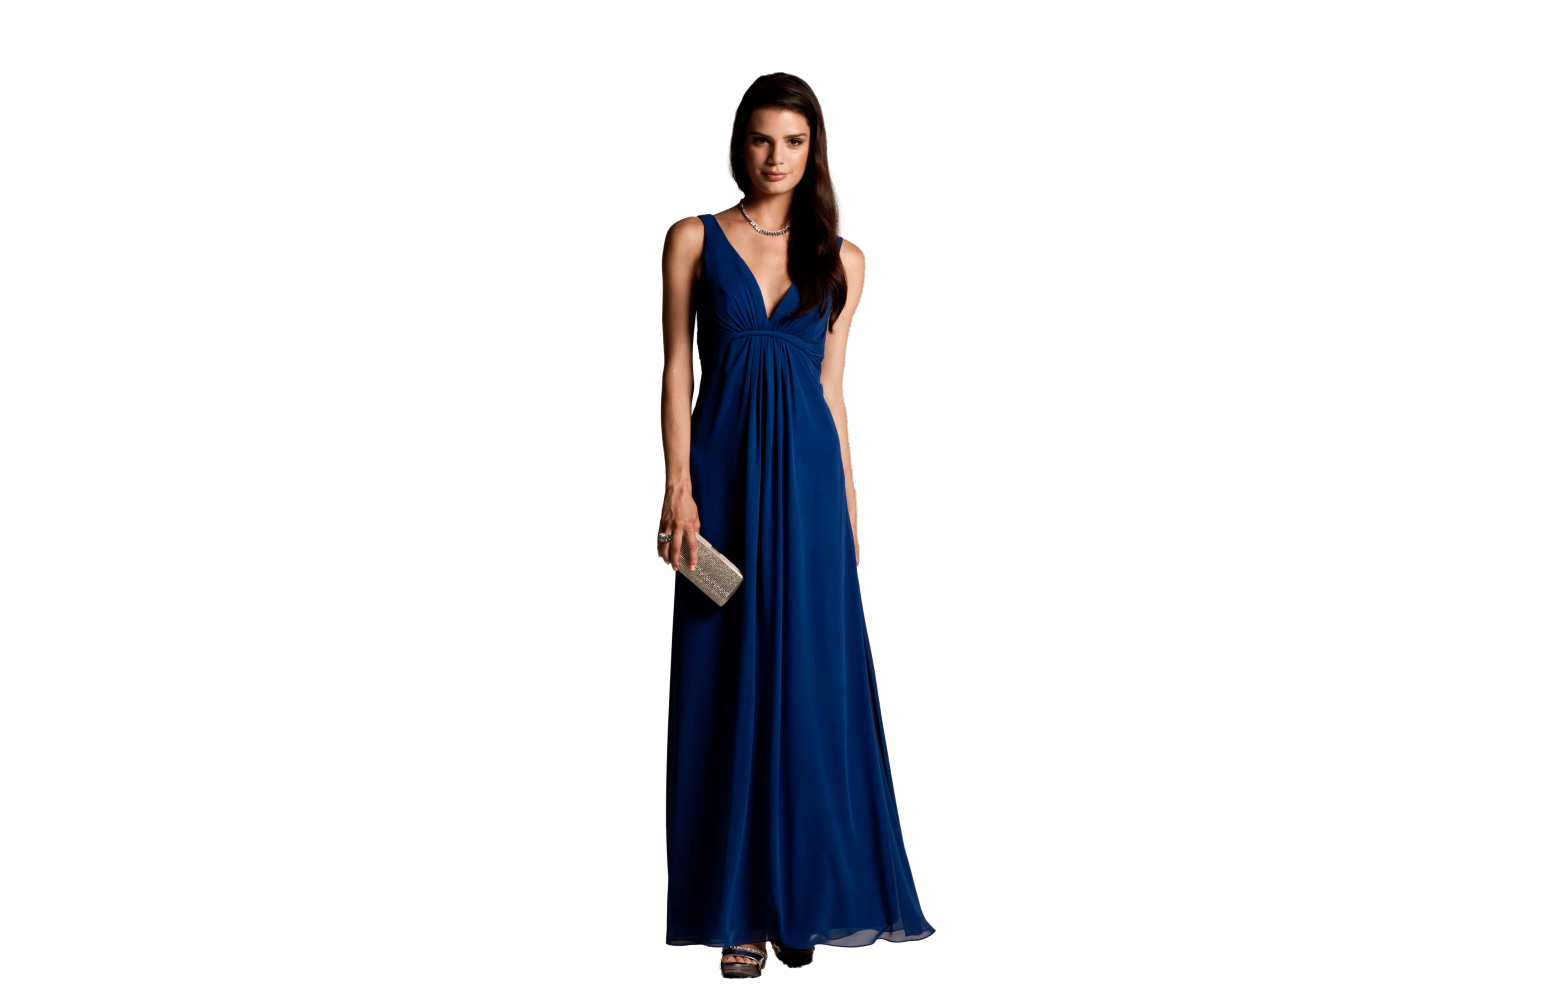 Blue bridesmaid dresses blue bridesmaid desses will look great blue bridesmaid dresses online amelia blue bridesmiad dresses online auatralia ombrellifo Image collections